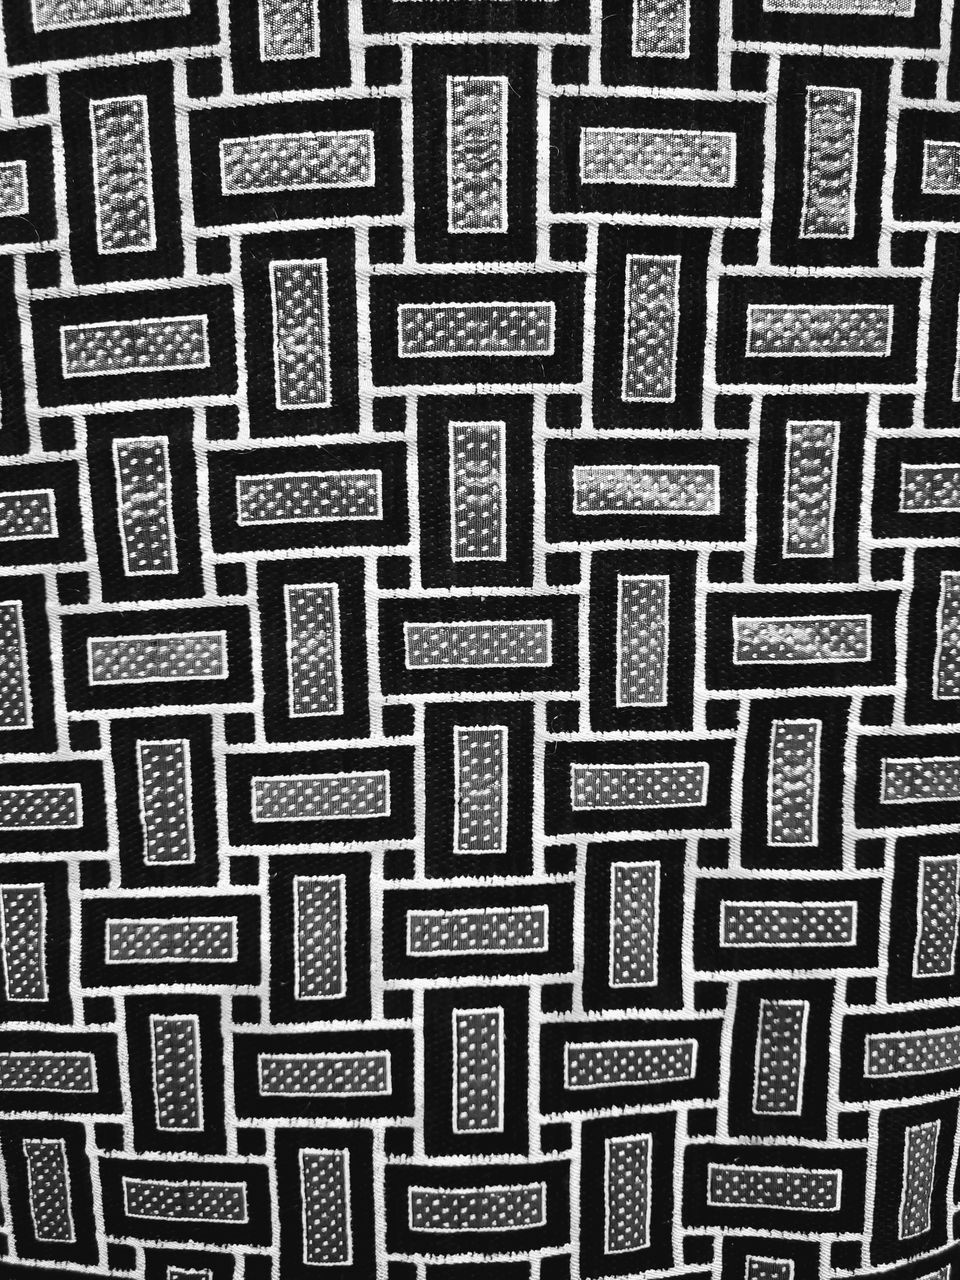 FULL FRAME SHOT OF ABSTRACT PATTERN ON WALL